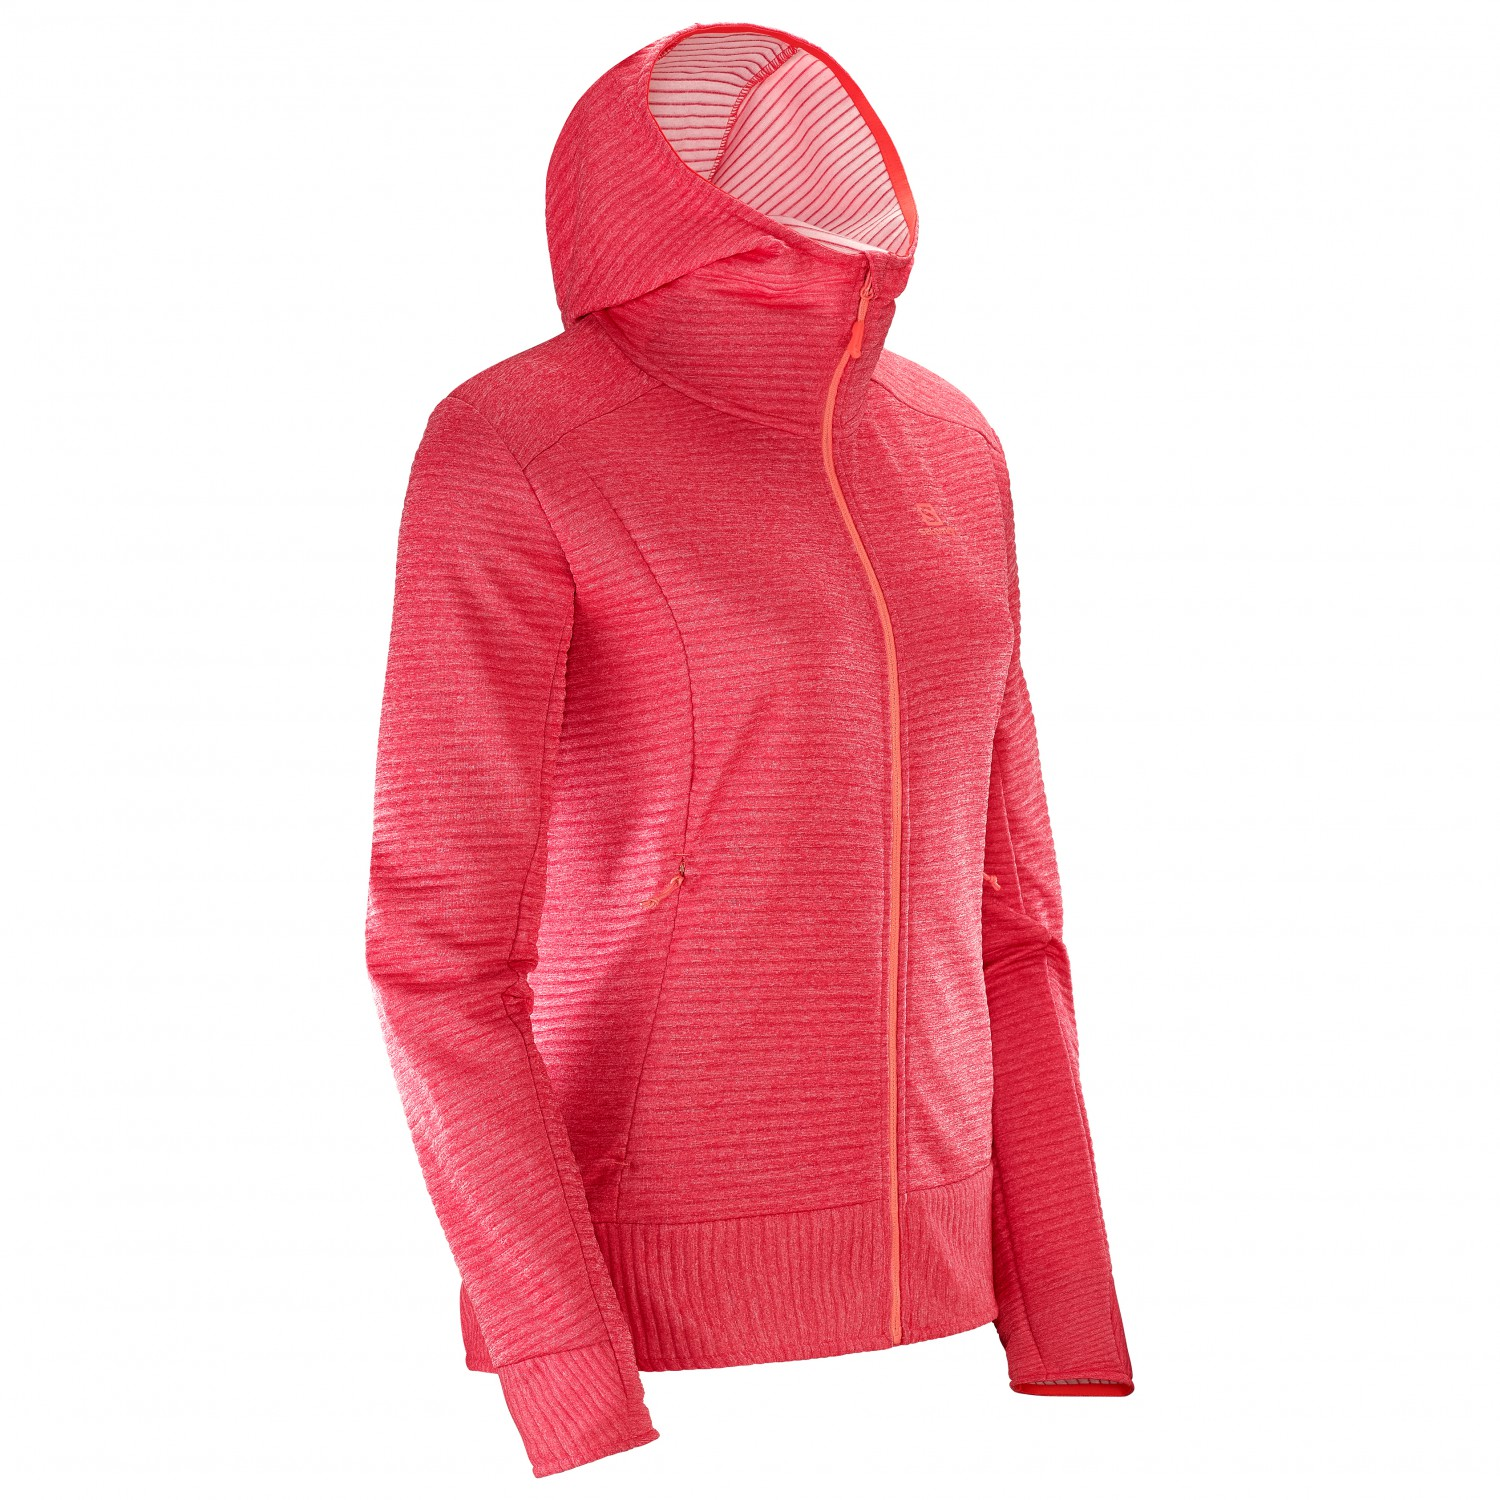 Salomon Hoodie Veste Polaire Right Nice Mid Night Women's SkyXs Lj4A5q3R